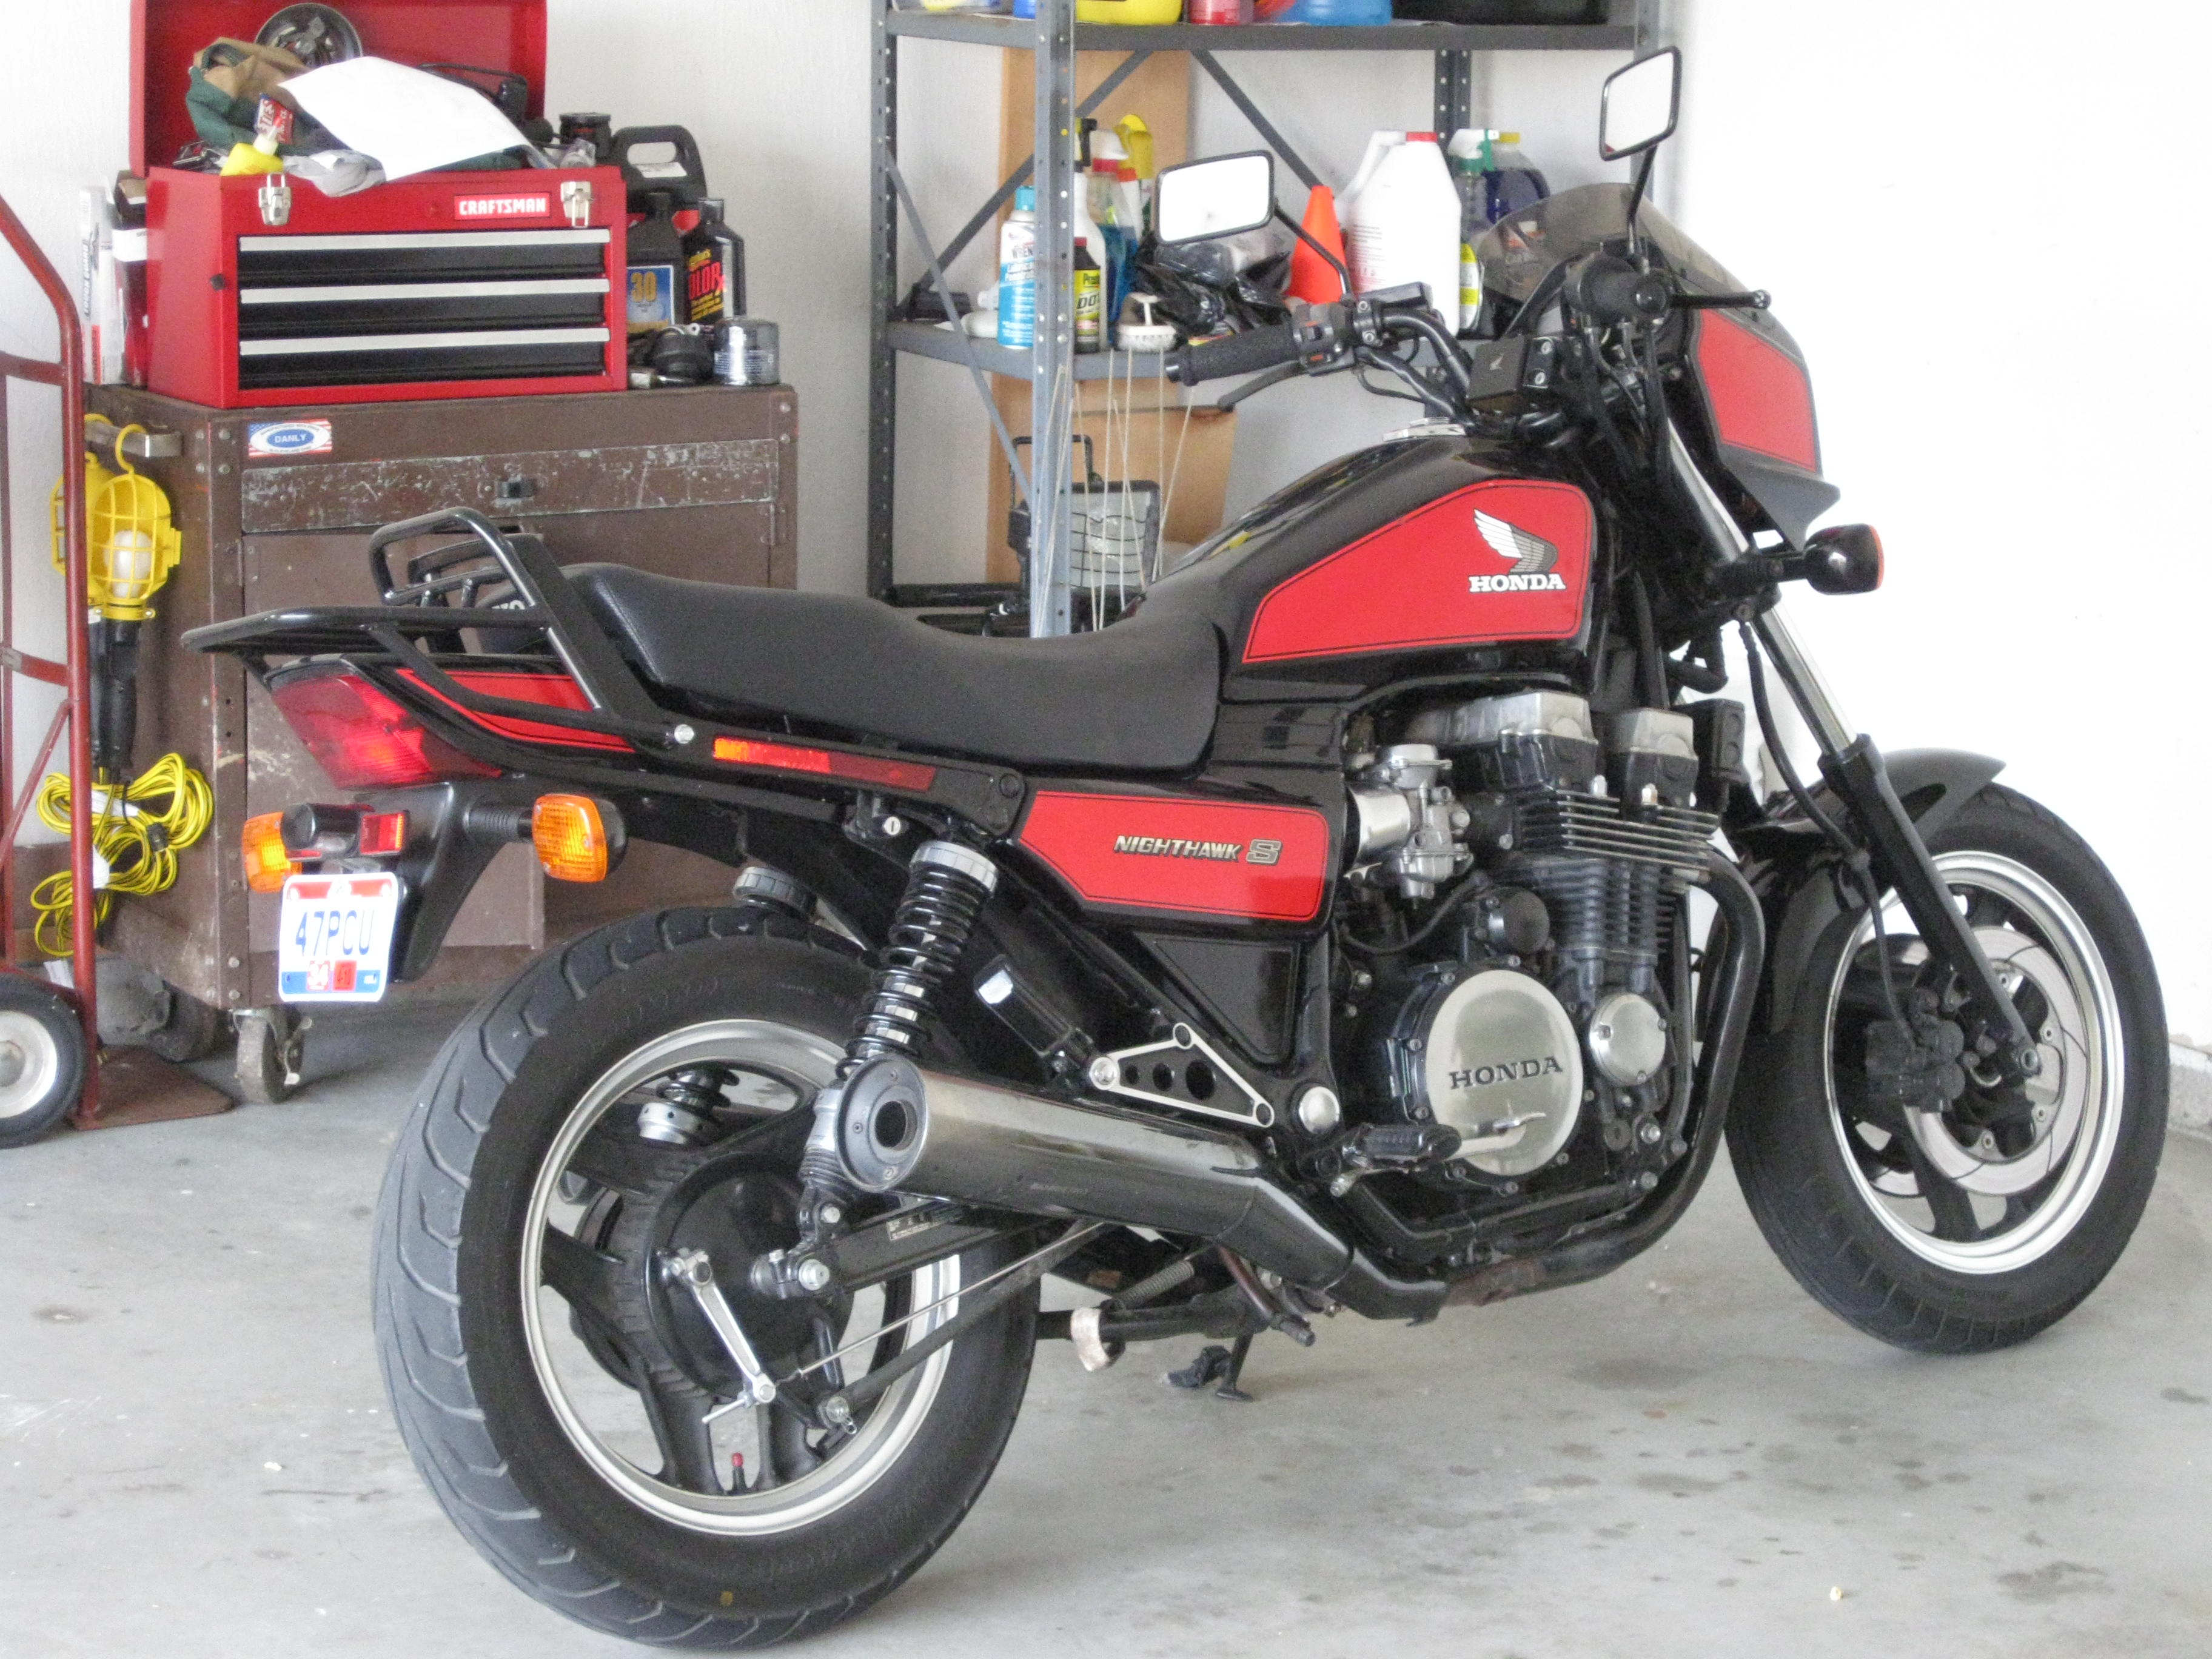 Honda Cb650 Nighthawk Wiring Diagram Library Surprising 83 550 Ideas Best Image